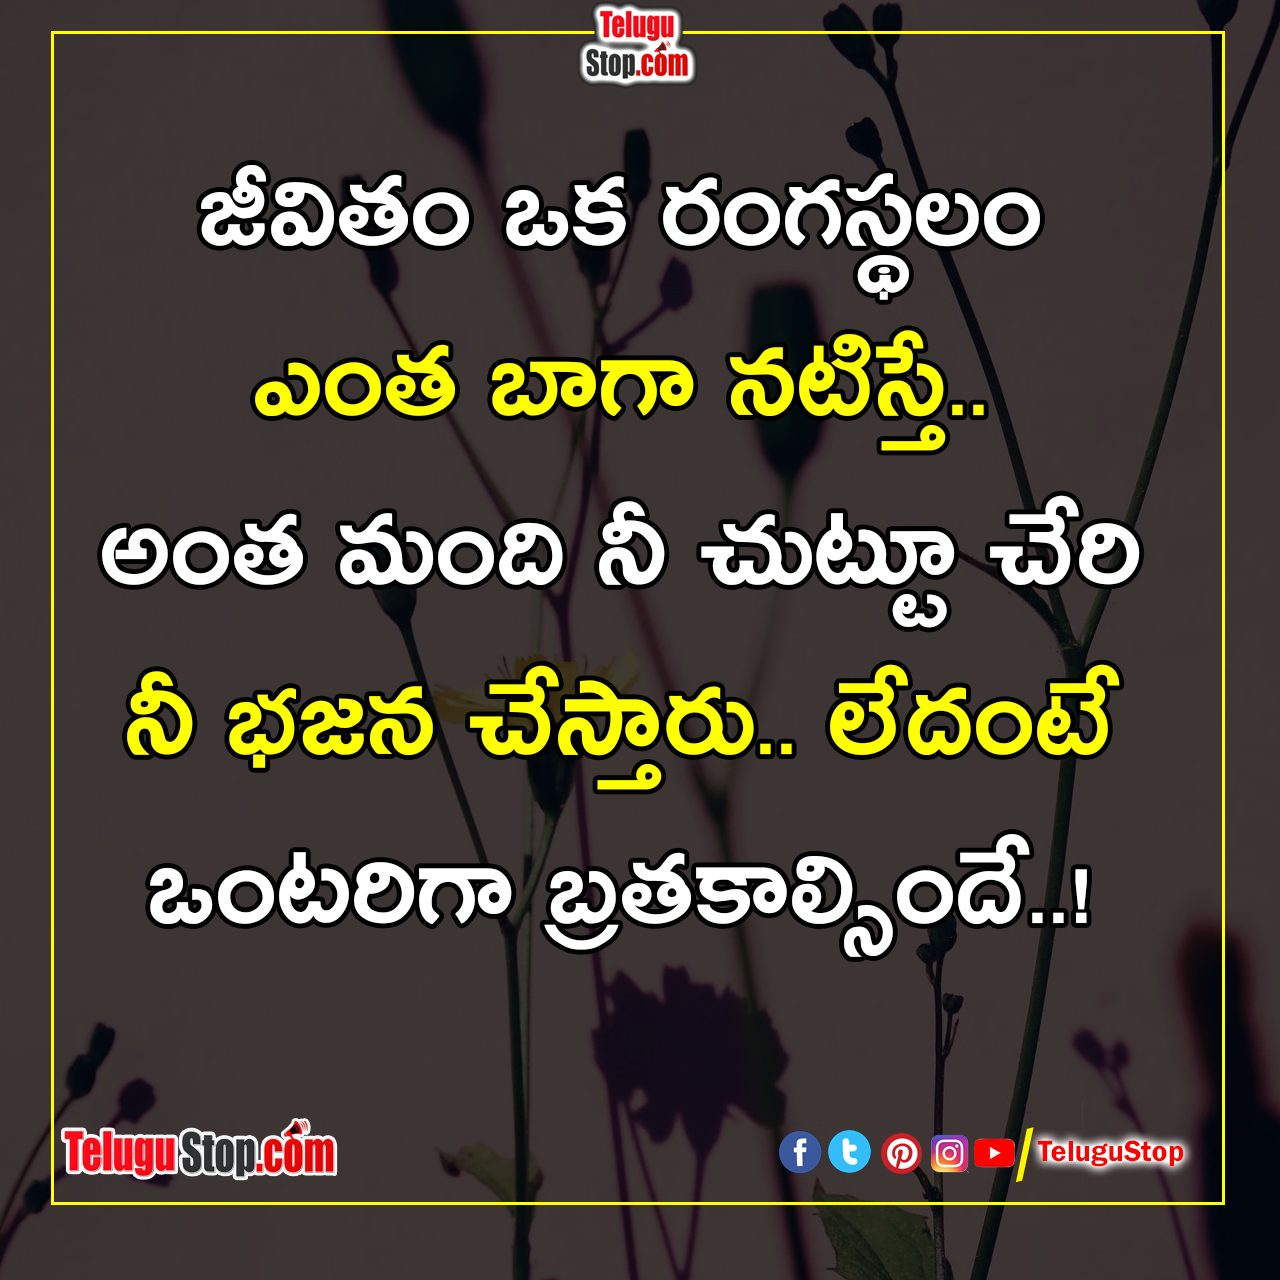 Telugu Do Not Cheat Inspiration Quotes, Looking To Do Better Inspirational Quotes, Mistakes Of Others Inspirational Quotes, True Lifee Facts Inspirational Quotes-Telugu Daily Quotes - Inspirational/Motivational/Love/Friendship/Good Morning Quote